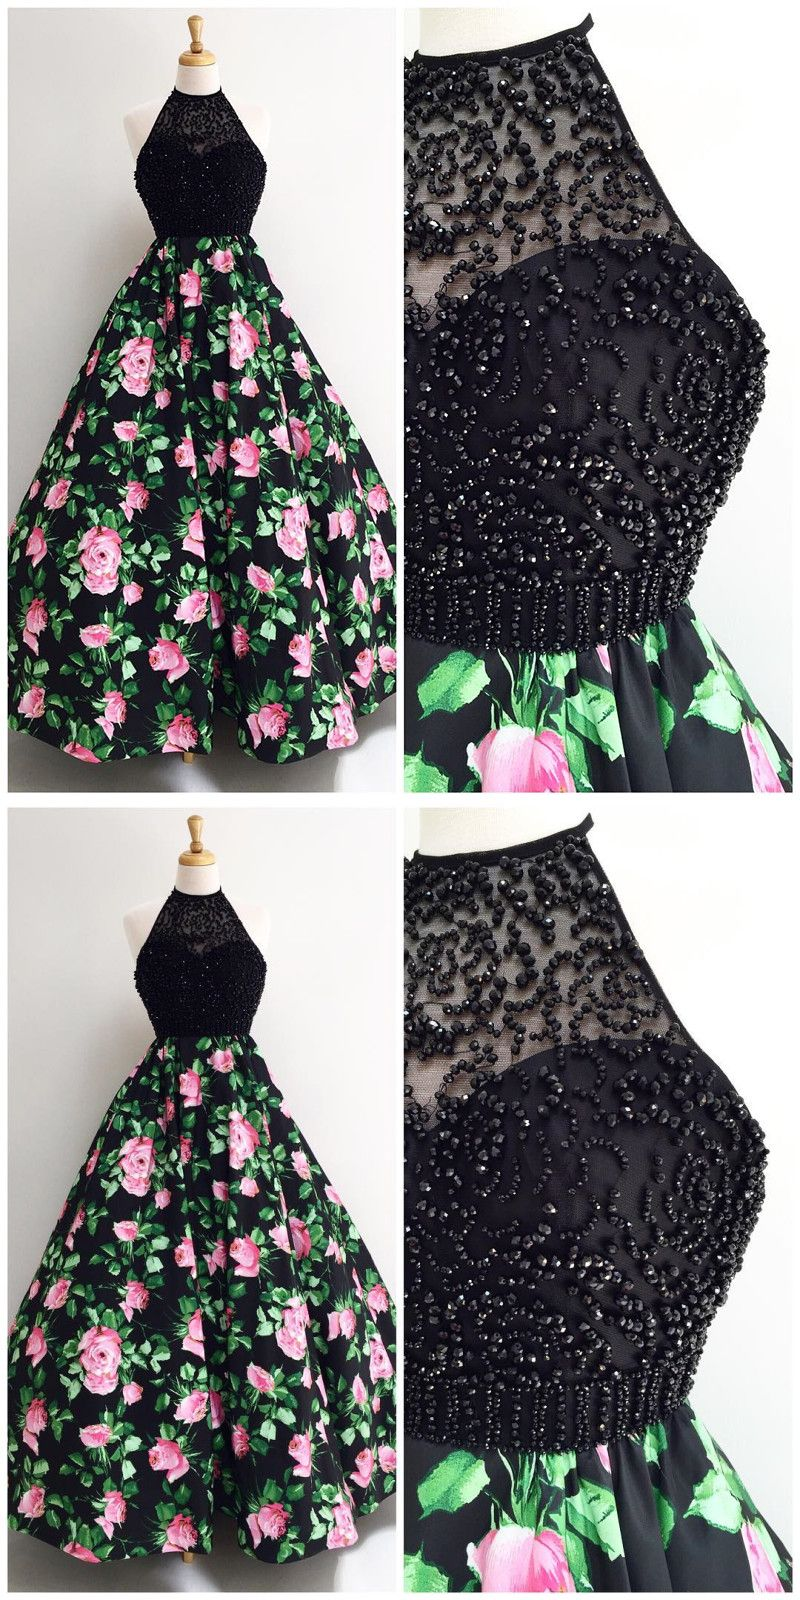 ffe66708431b Gorgeous Halter Black Long Floral Prom Dress,Prom Dresses,Evening Dress, Prom  Gowns, Formal Women Dress,prom dress P0675 #promdress #promdresses  #promgown ...